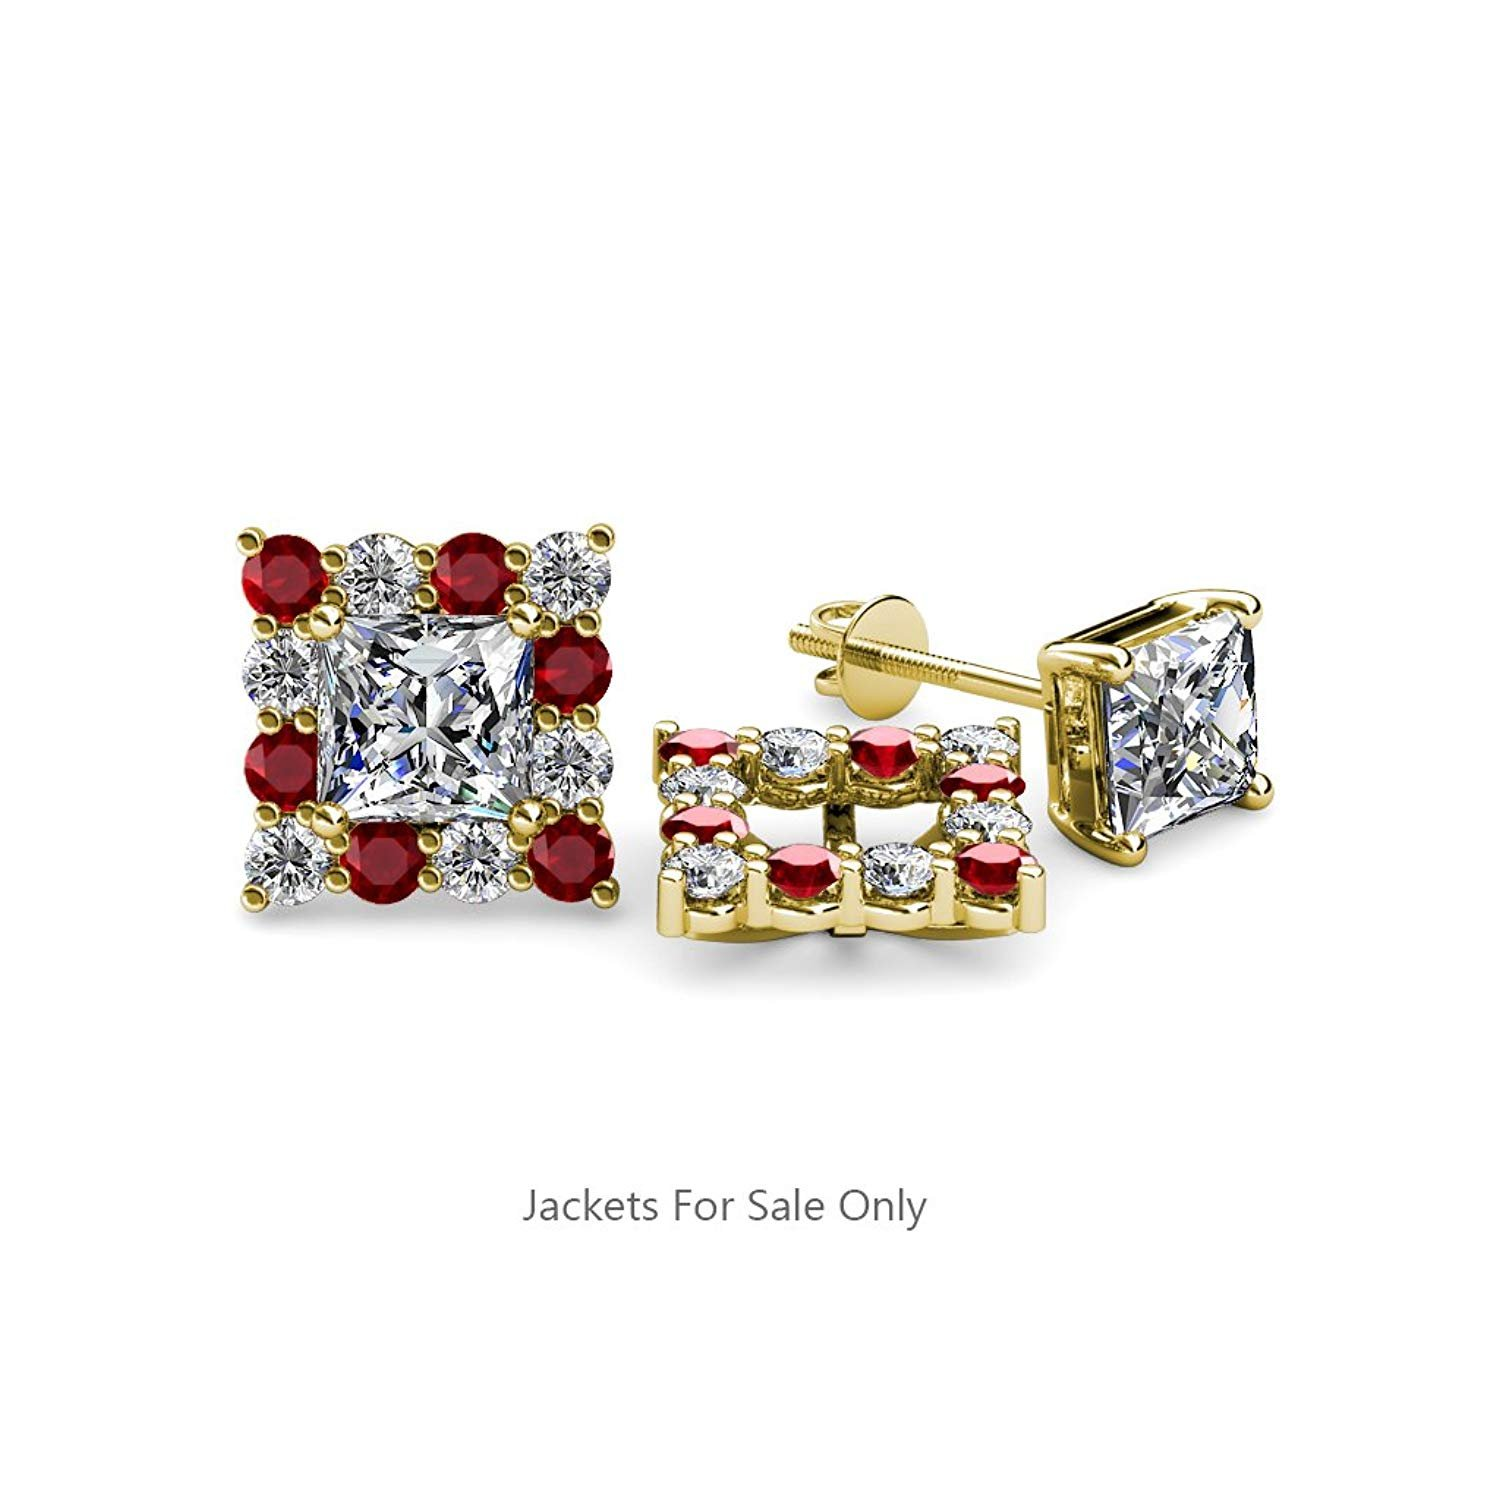 Vintage 18 Karat Yellow Gold Over 0.60ct Ruby and Diamond Earrings Jackets Only